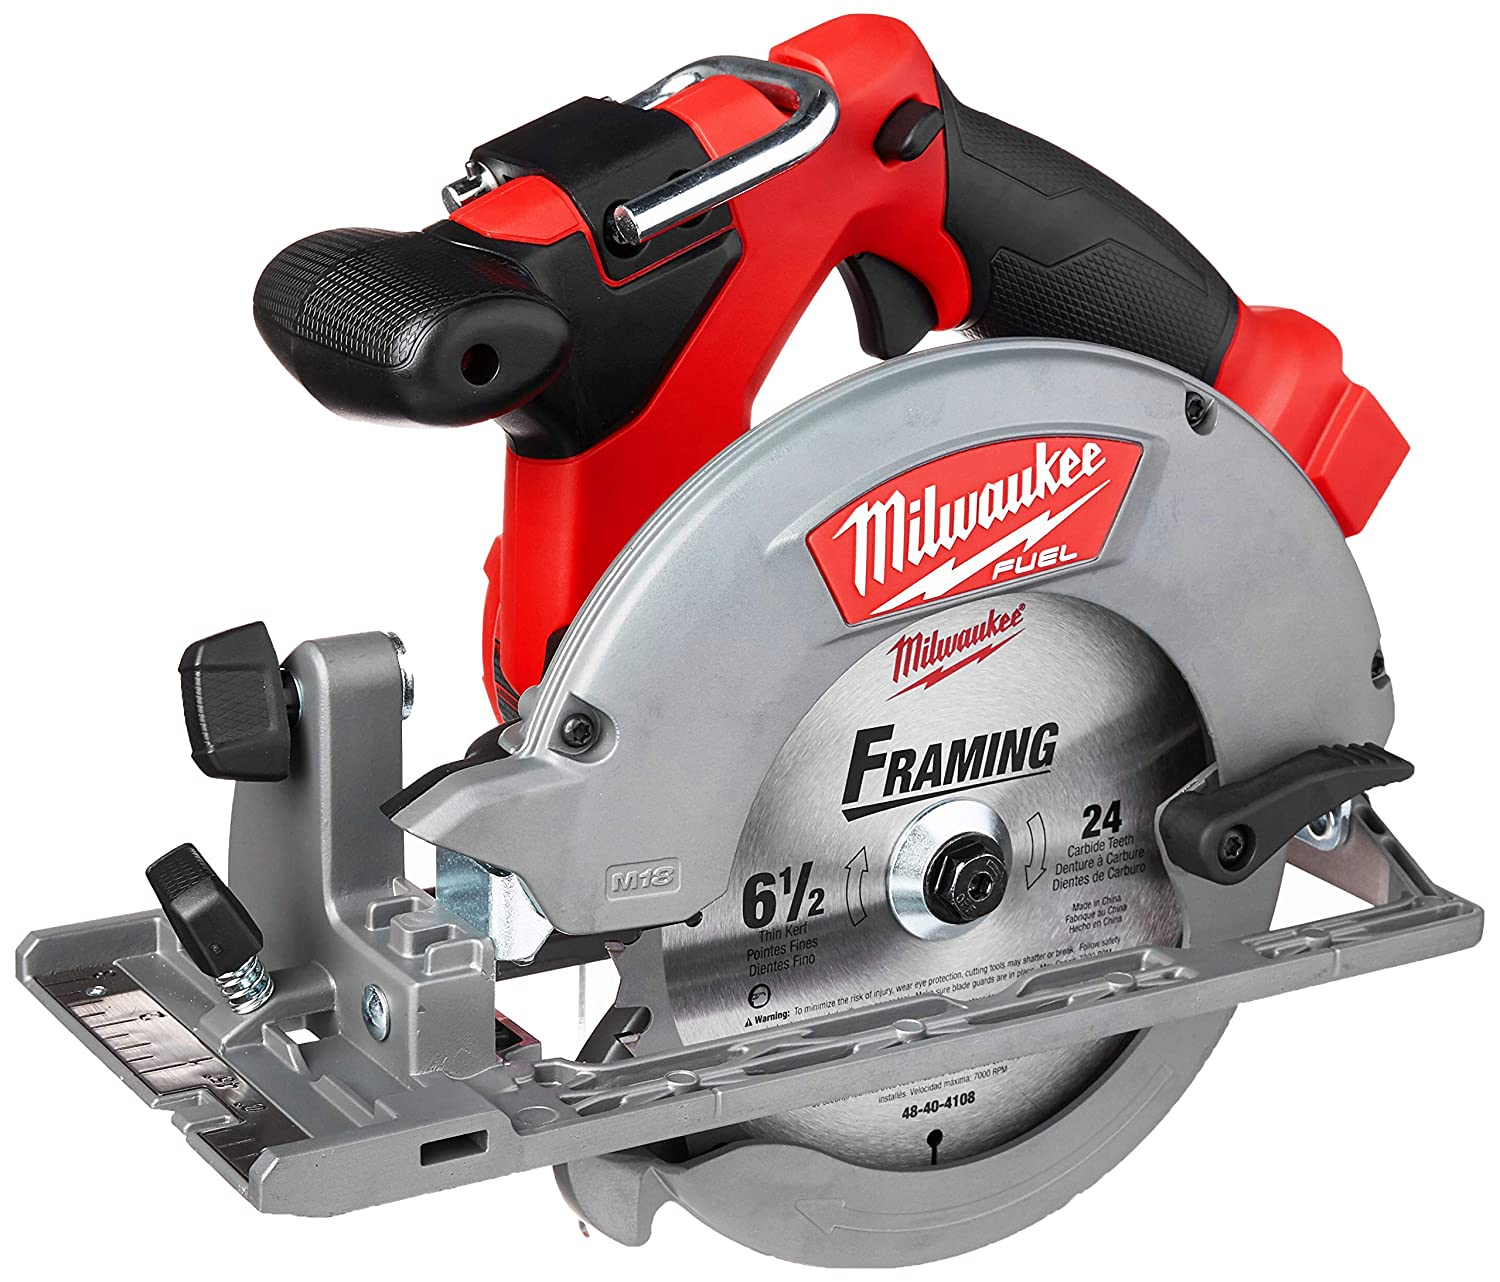 3. Milwaukee 2730-20 M18 6 1/2 Circular Saw